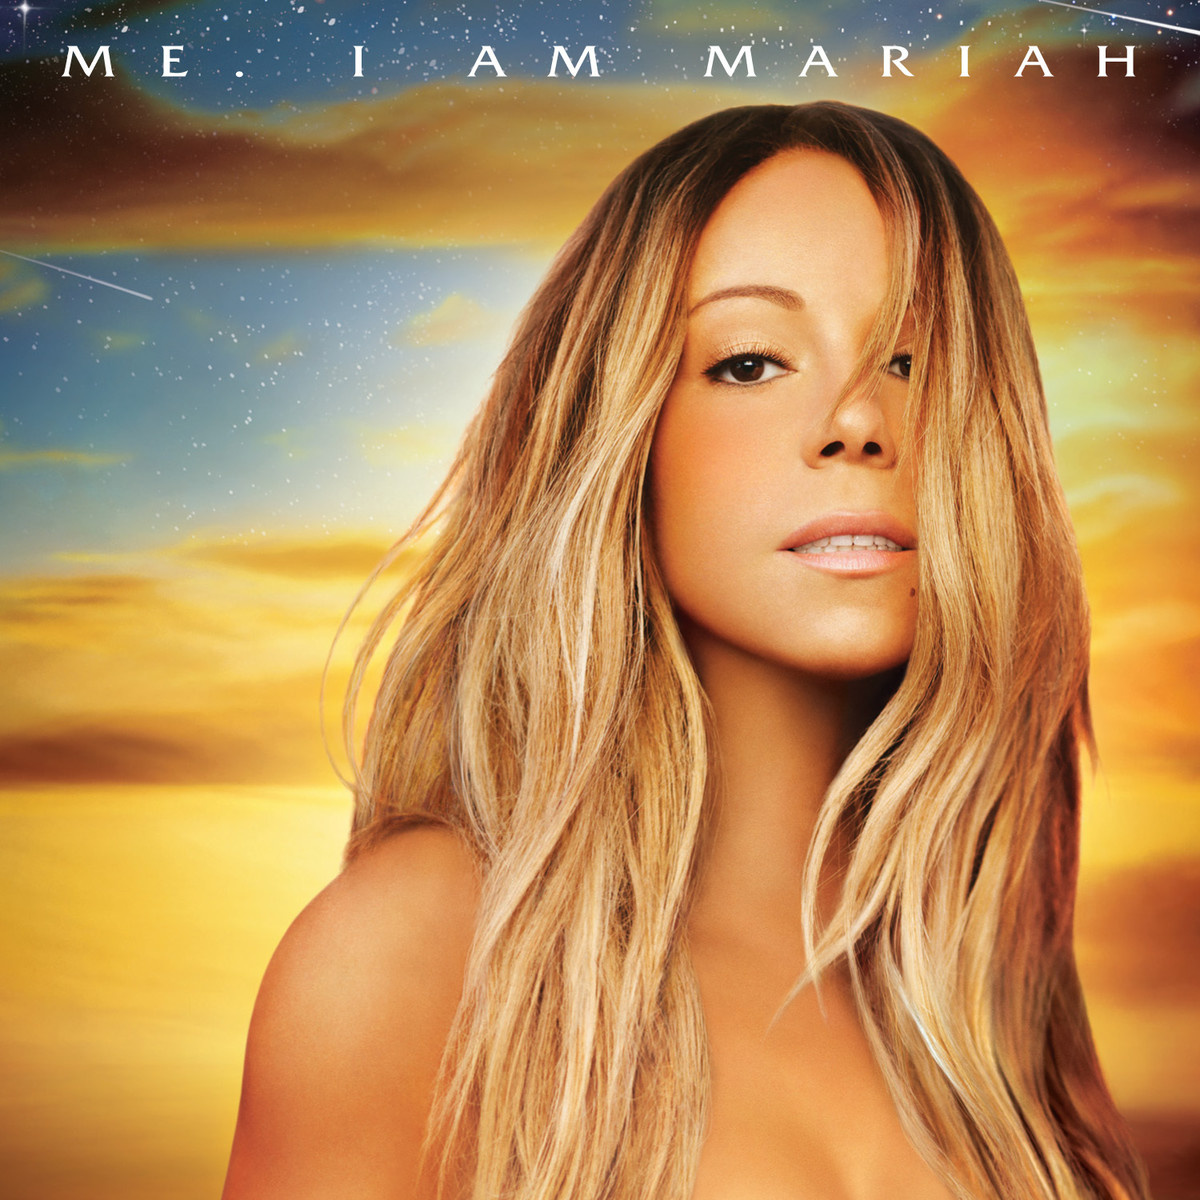 Me. I Am Mariah…The Elusive Chanteuse – Mariah Carey(玛丽亚·凯莉) 专辑 在线试听的照片 - 2